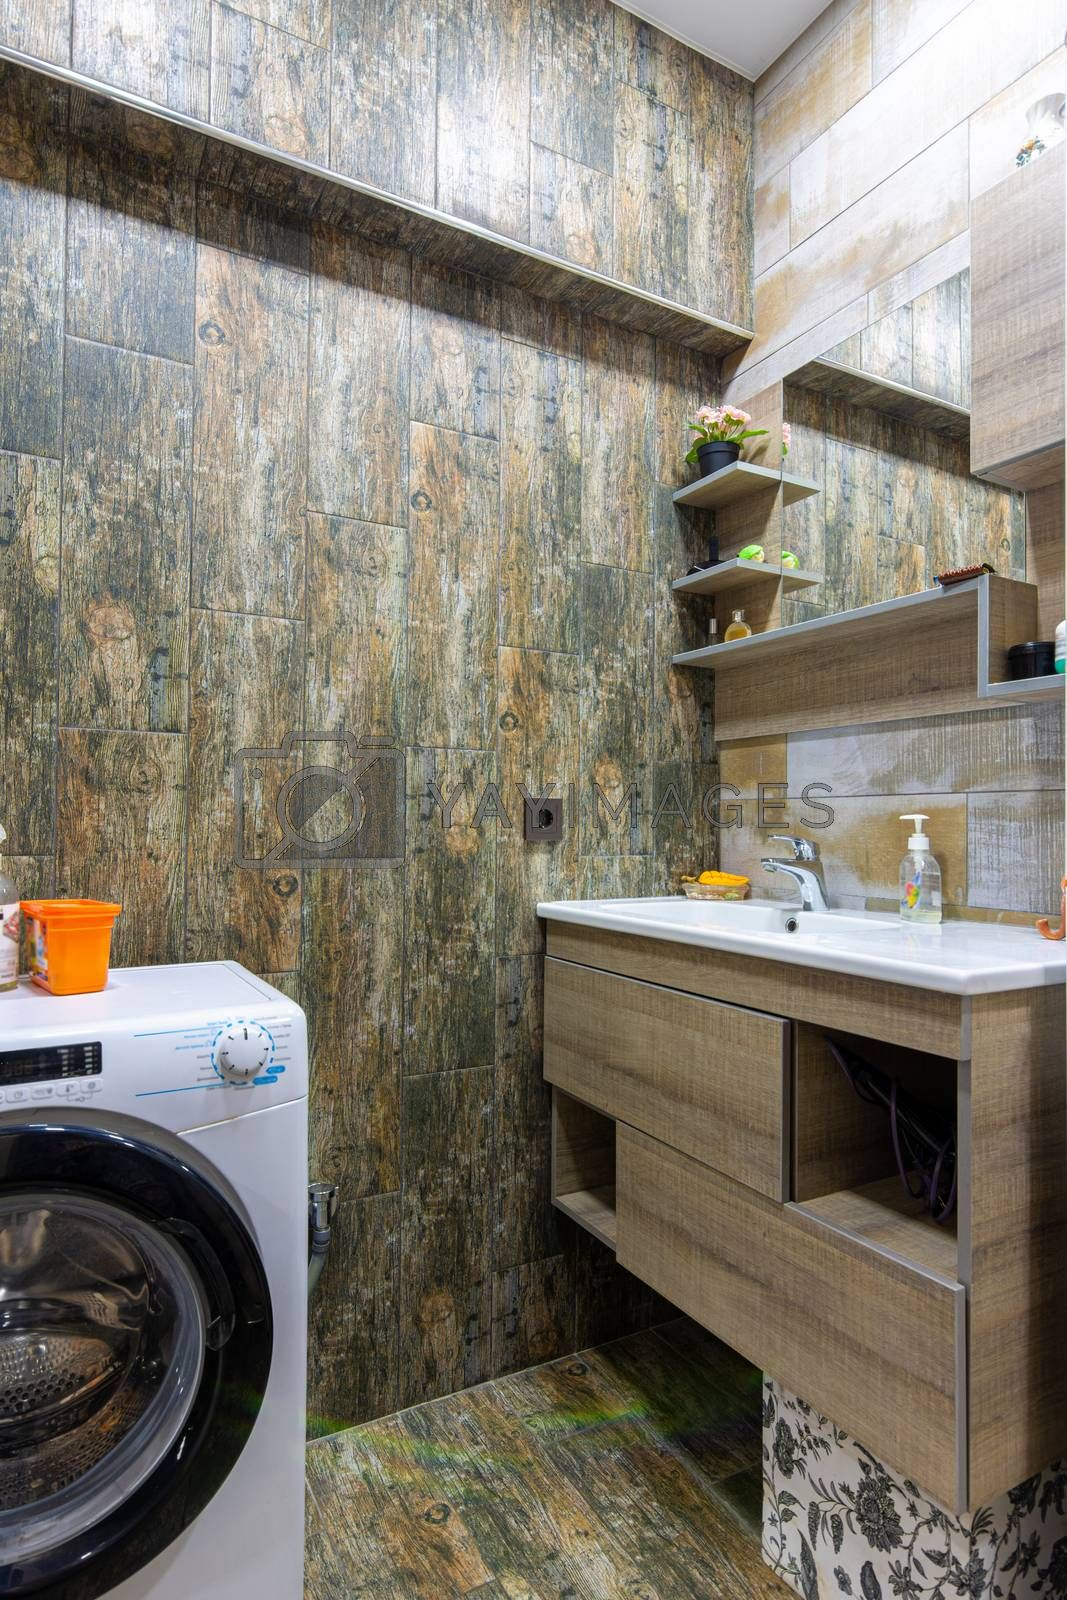 Bathroom interior with beautiful tiles, a view of the washbasin built into the furniture with a mirror and a washing machine